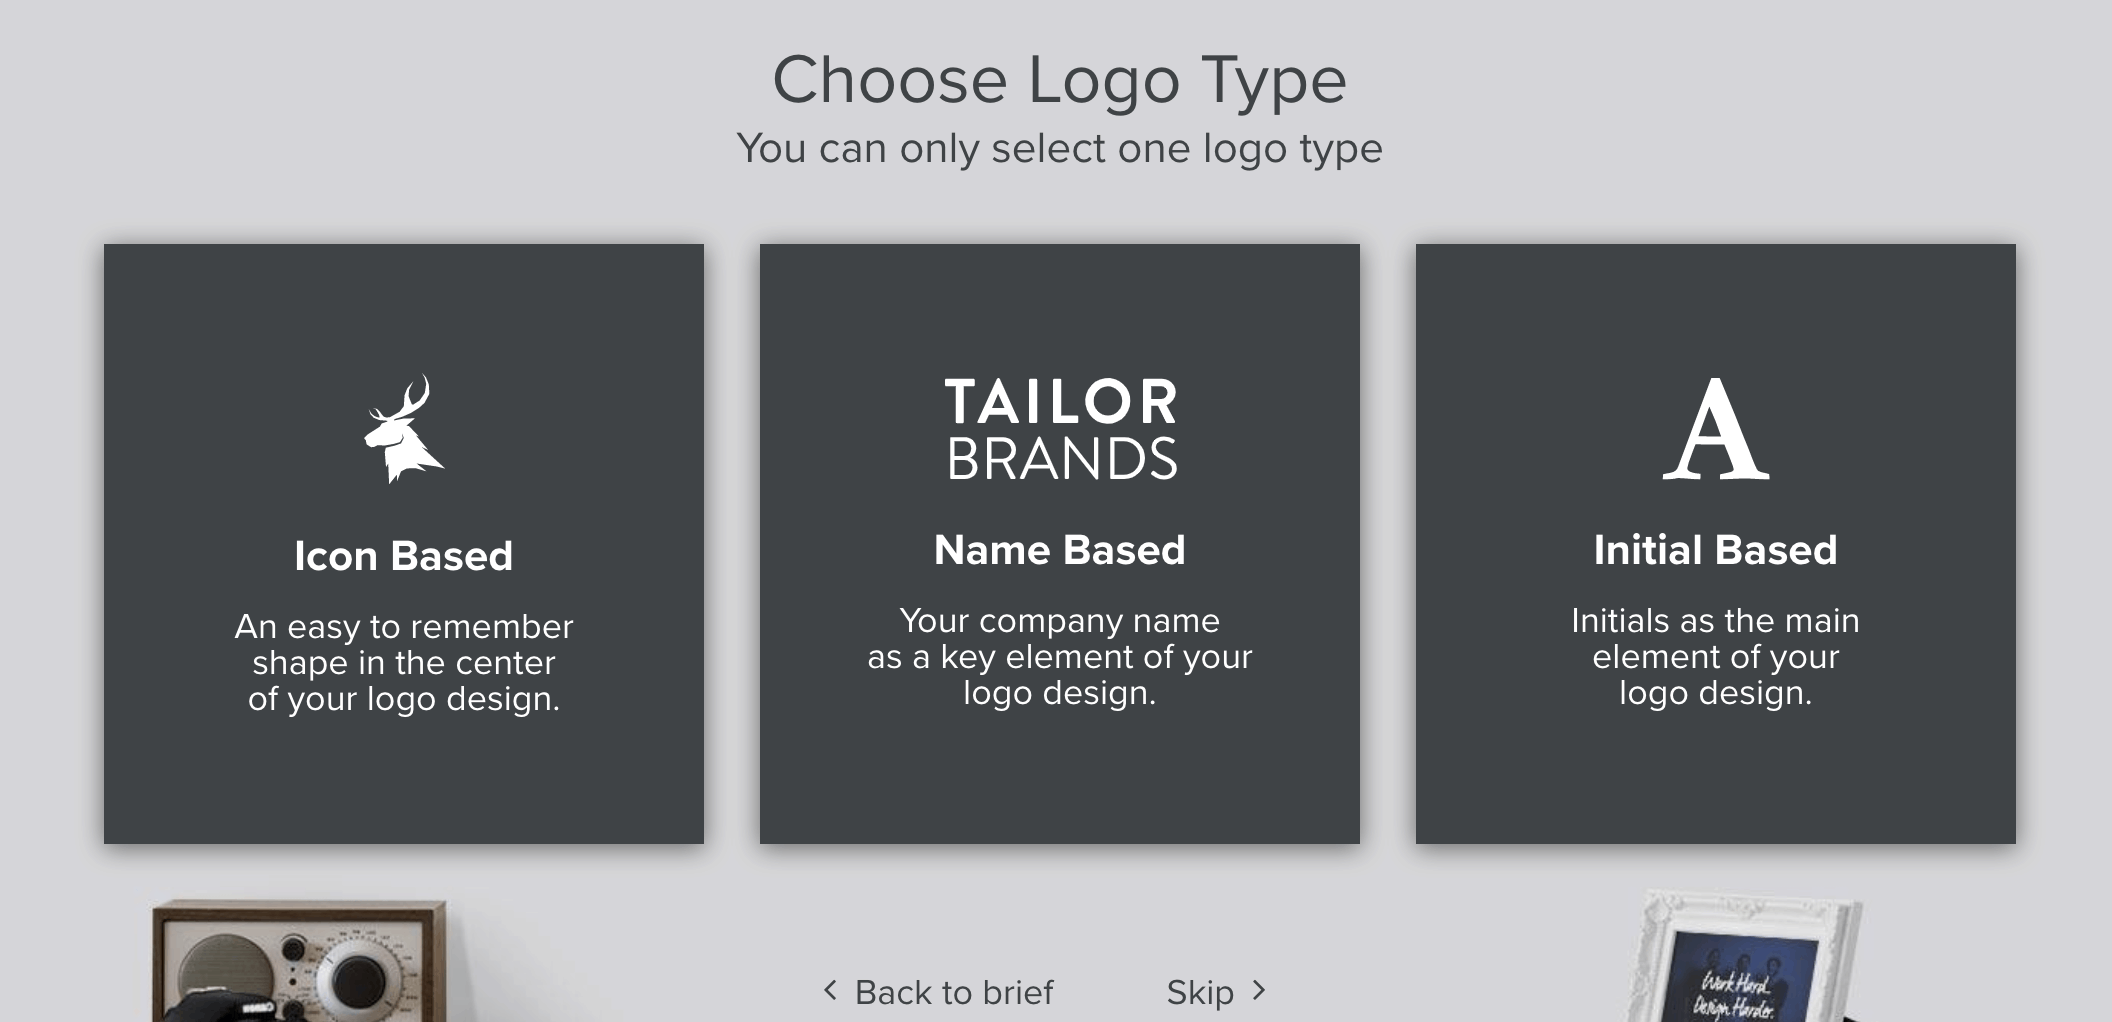 Tailor Brands screenshot - Choose logo type